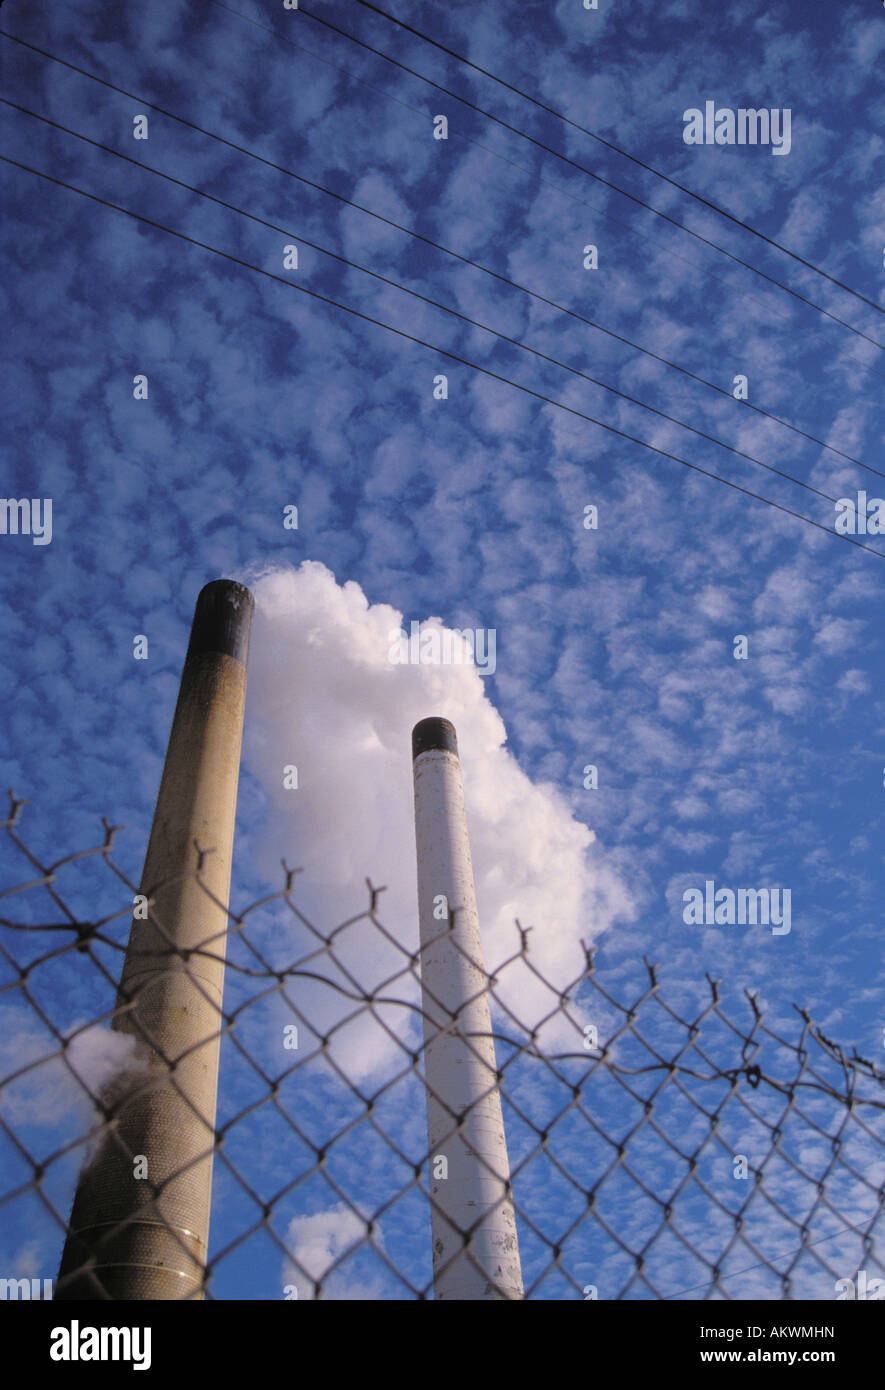 Smokestacks from Coal fired Power plant - Stock Image